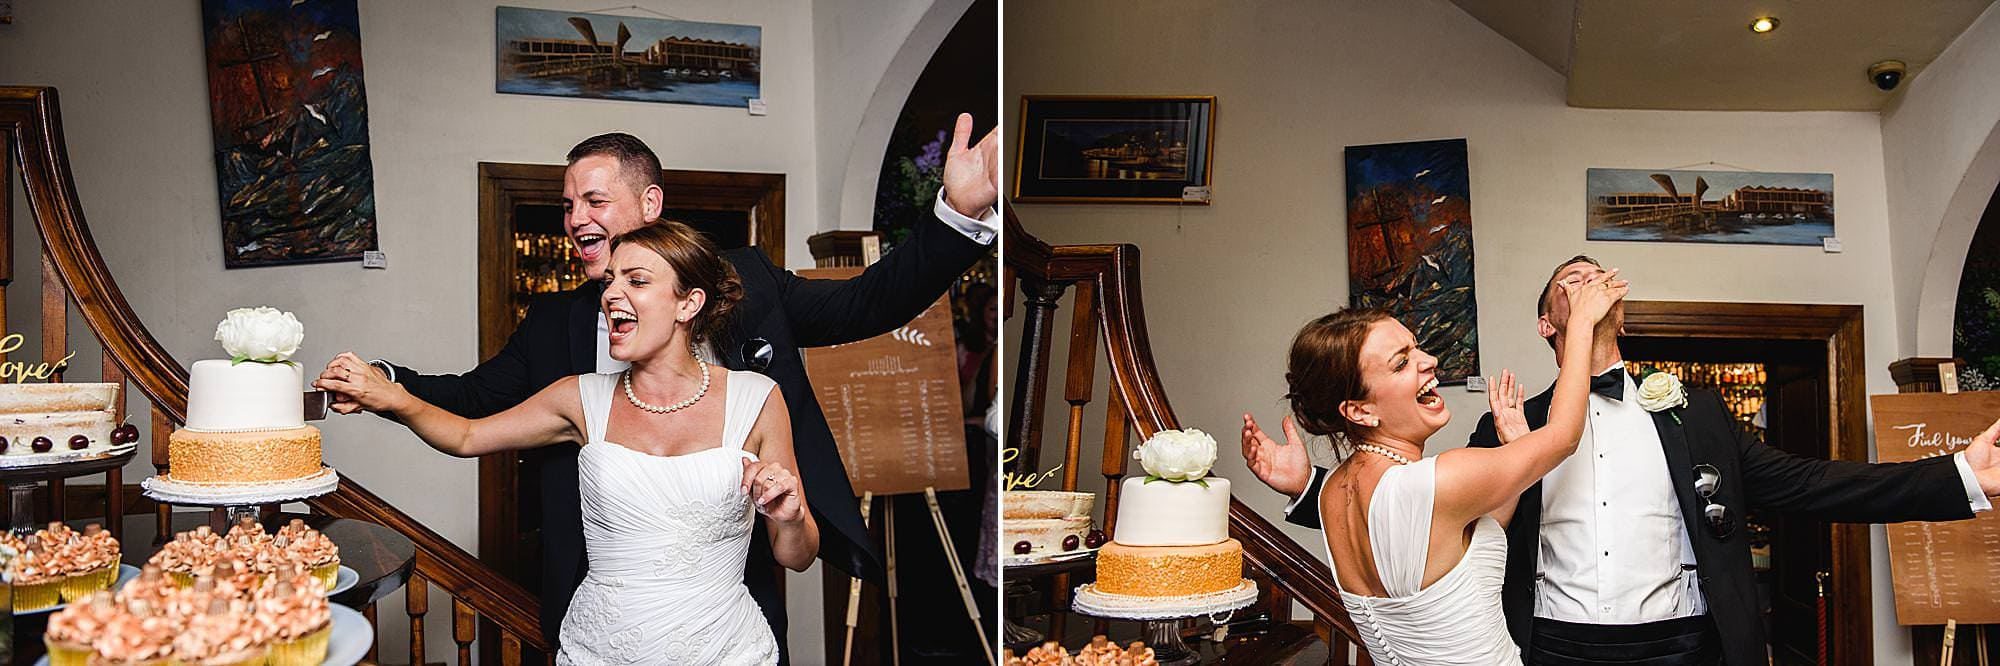 Bride and groom cut the cake and bride feeds groom at their Tummer hotel wedding Bristol